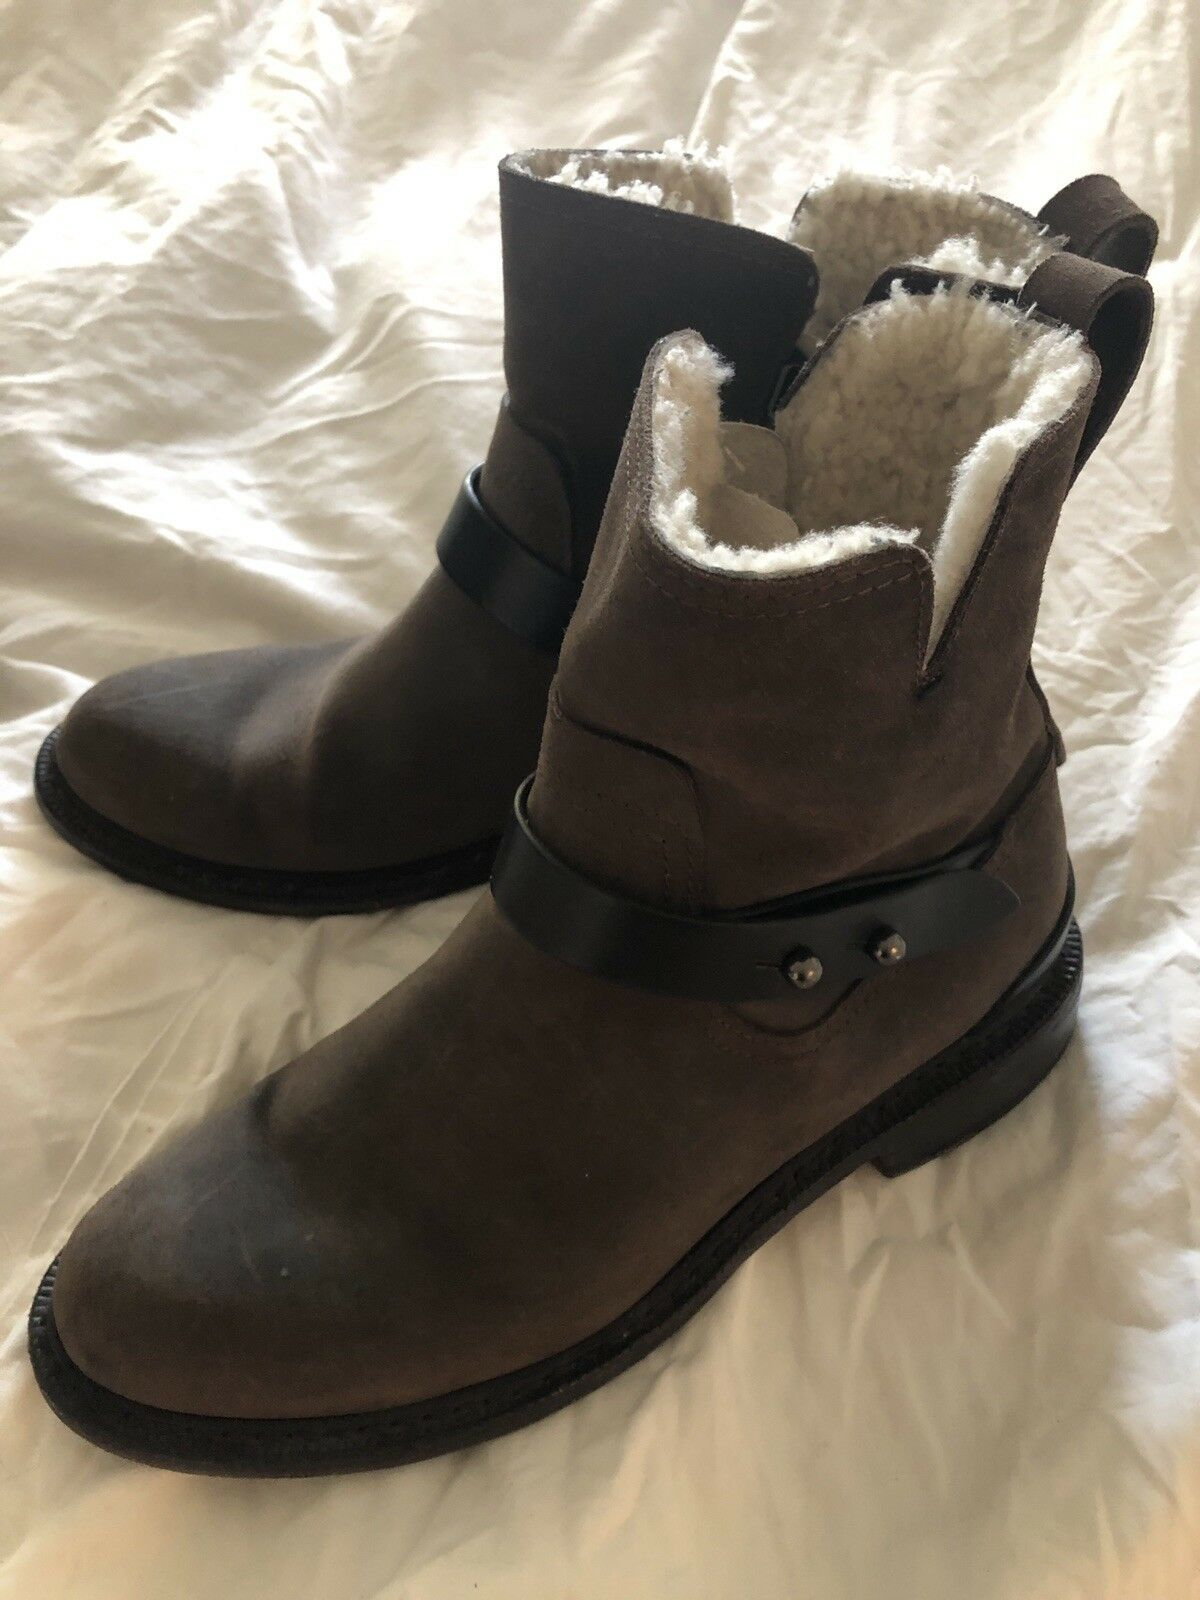 in vendita online RAG & BONE Dark Marrone Hand Made Suede Suede Suede Ankle Shearling Lined Zip stivali  Sz 37  Felice shopping